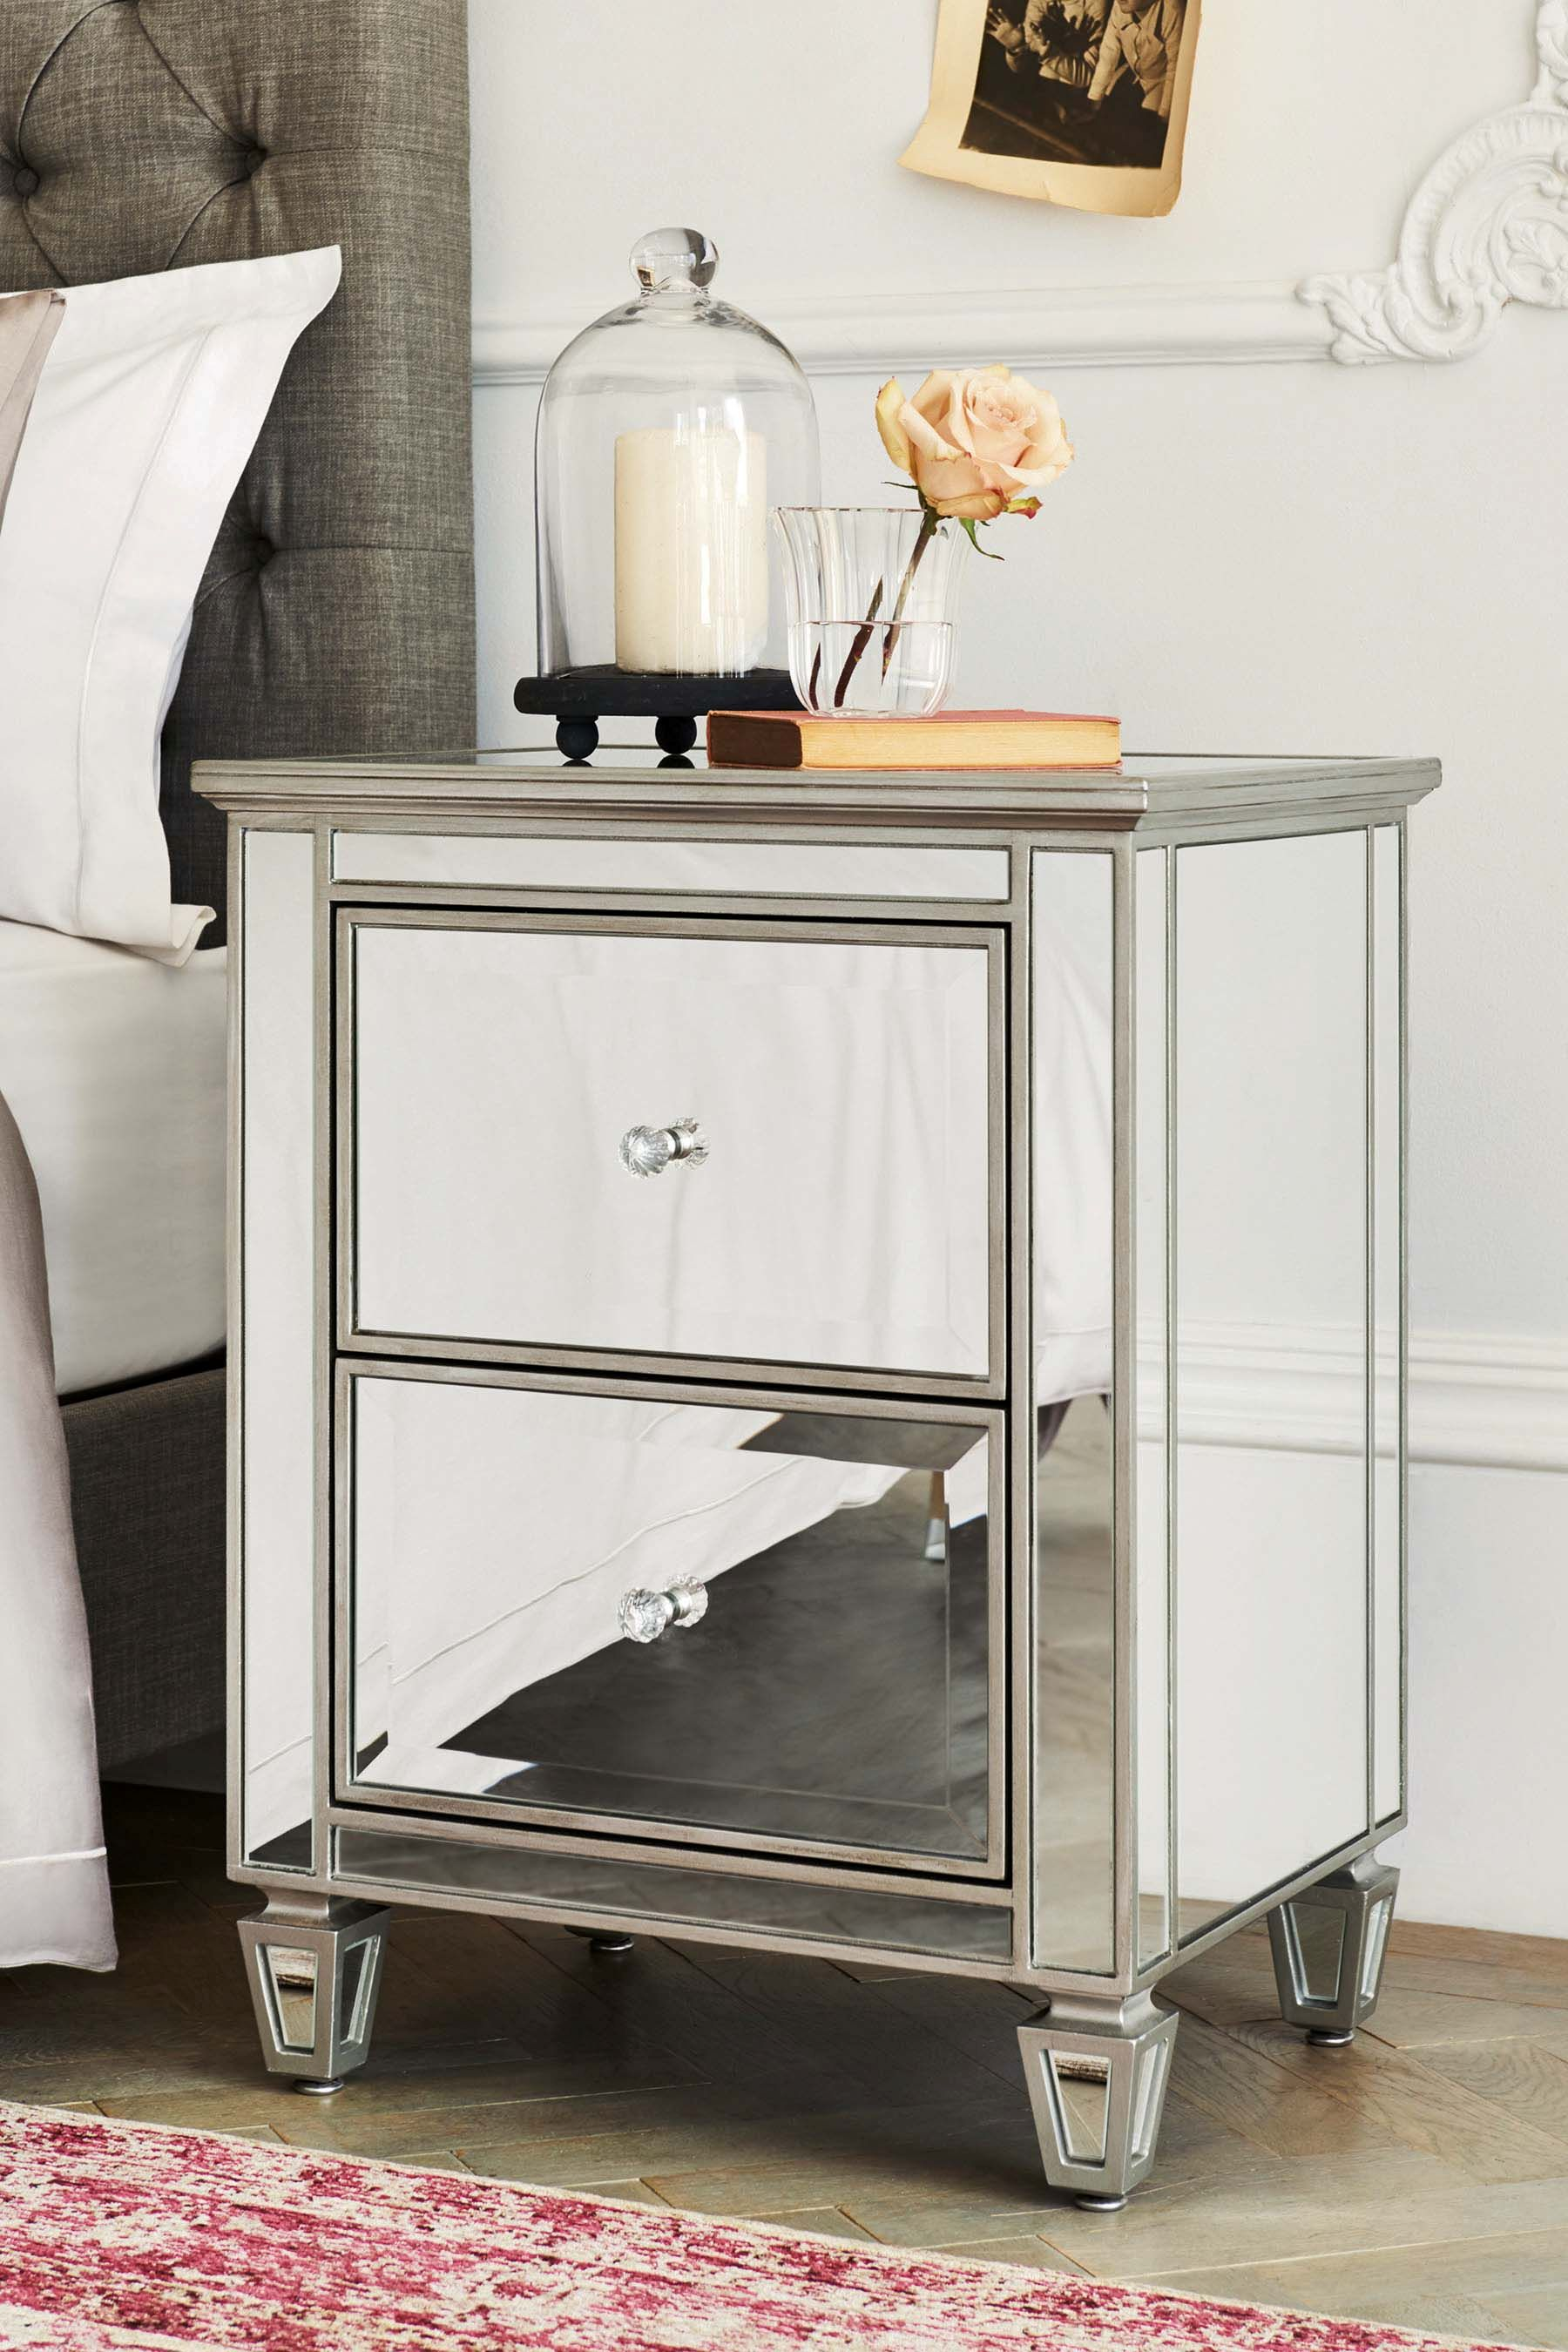 Mirrored Bedside Table With Drawers: Next Fleur 2 Drawer Bedside Table - Silver